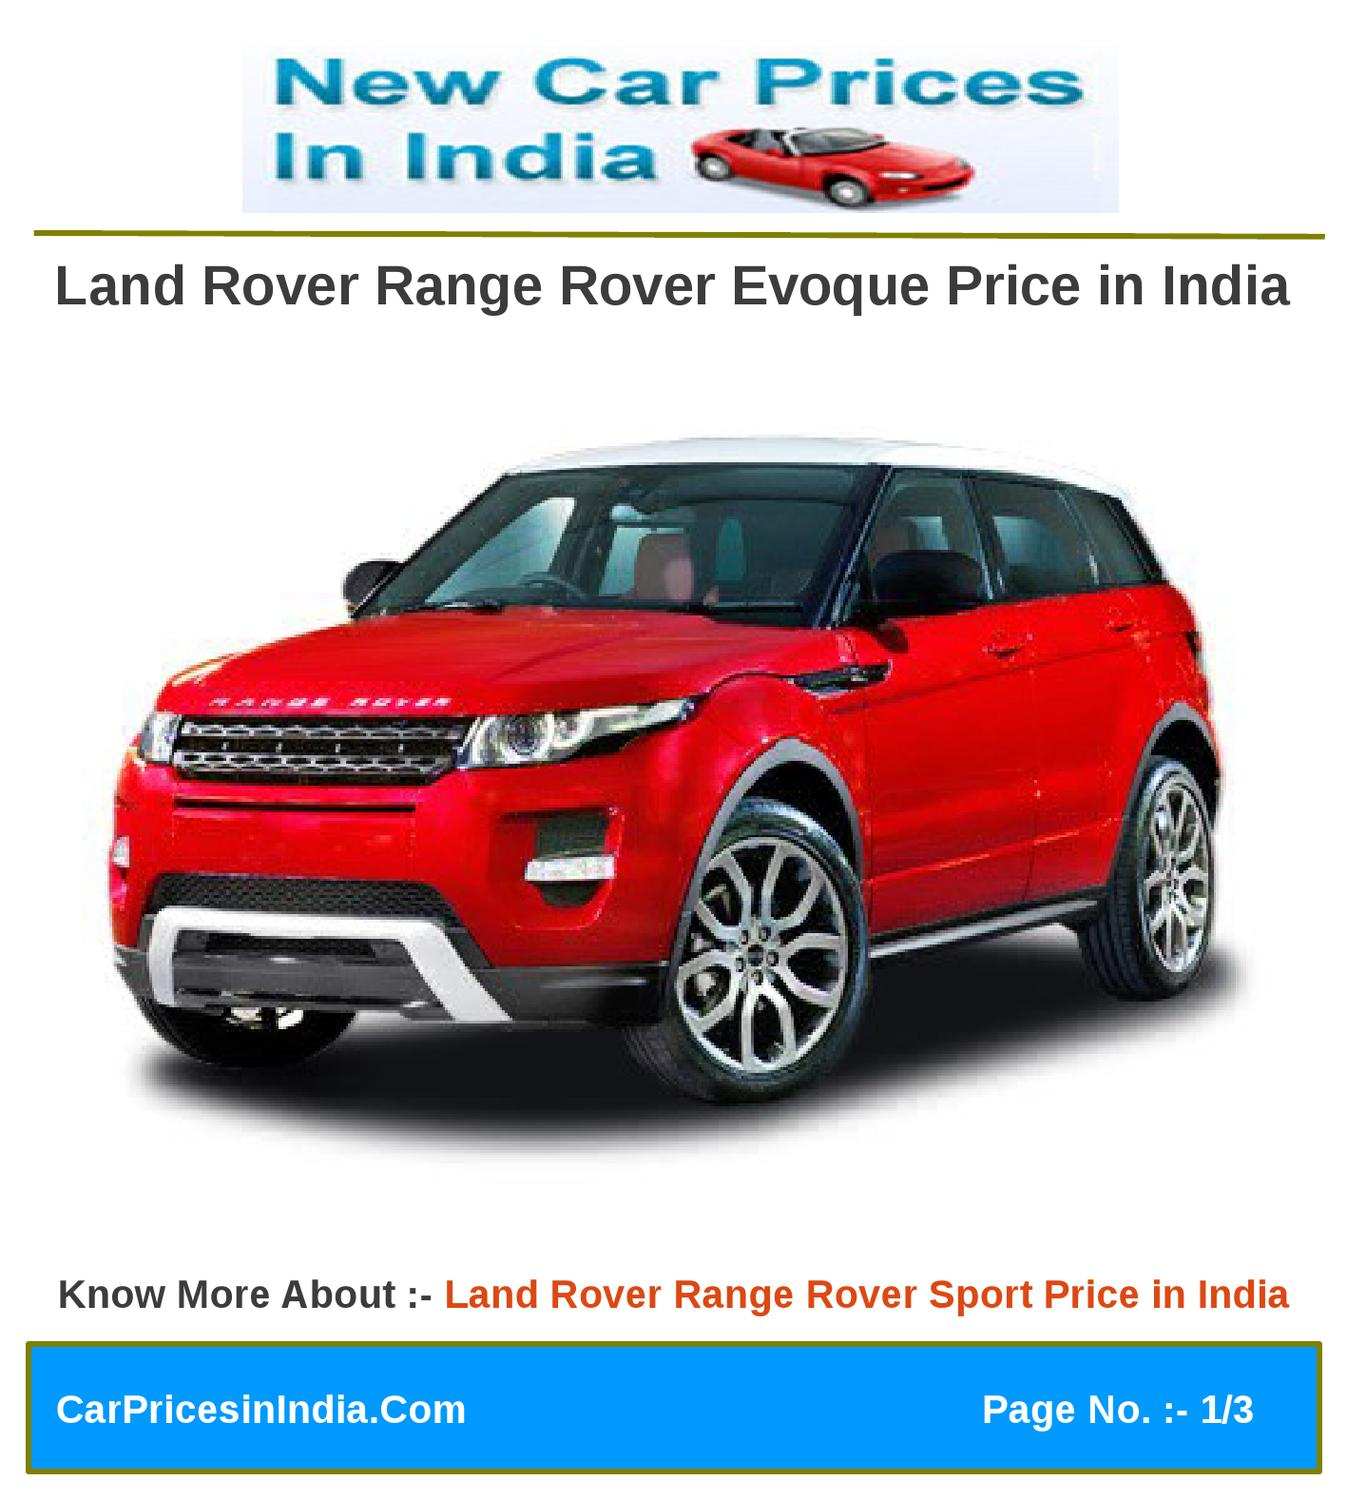 Land Rover Range Rover Evoque Price In India By Manoj Kumar Issuu